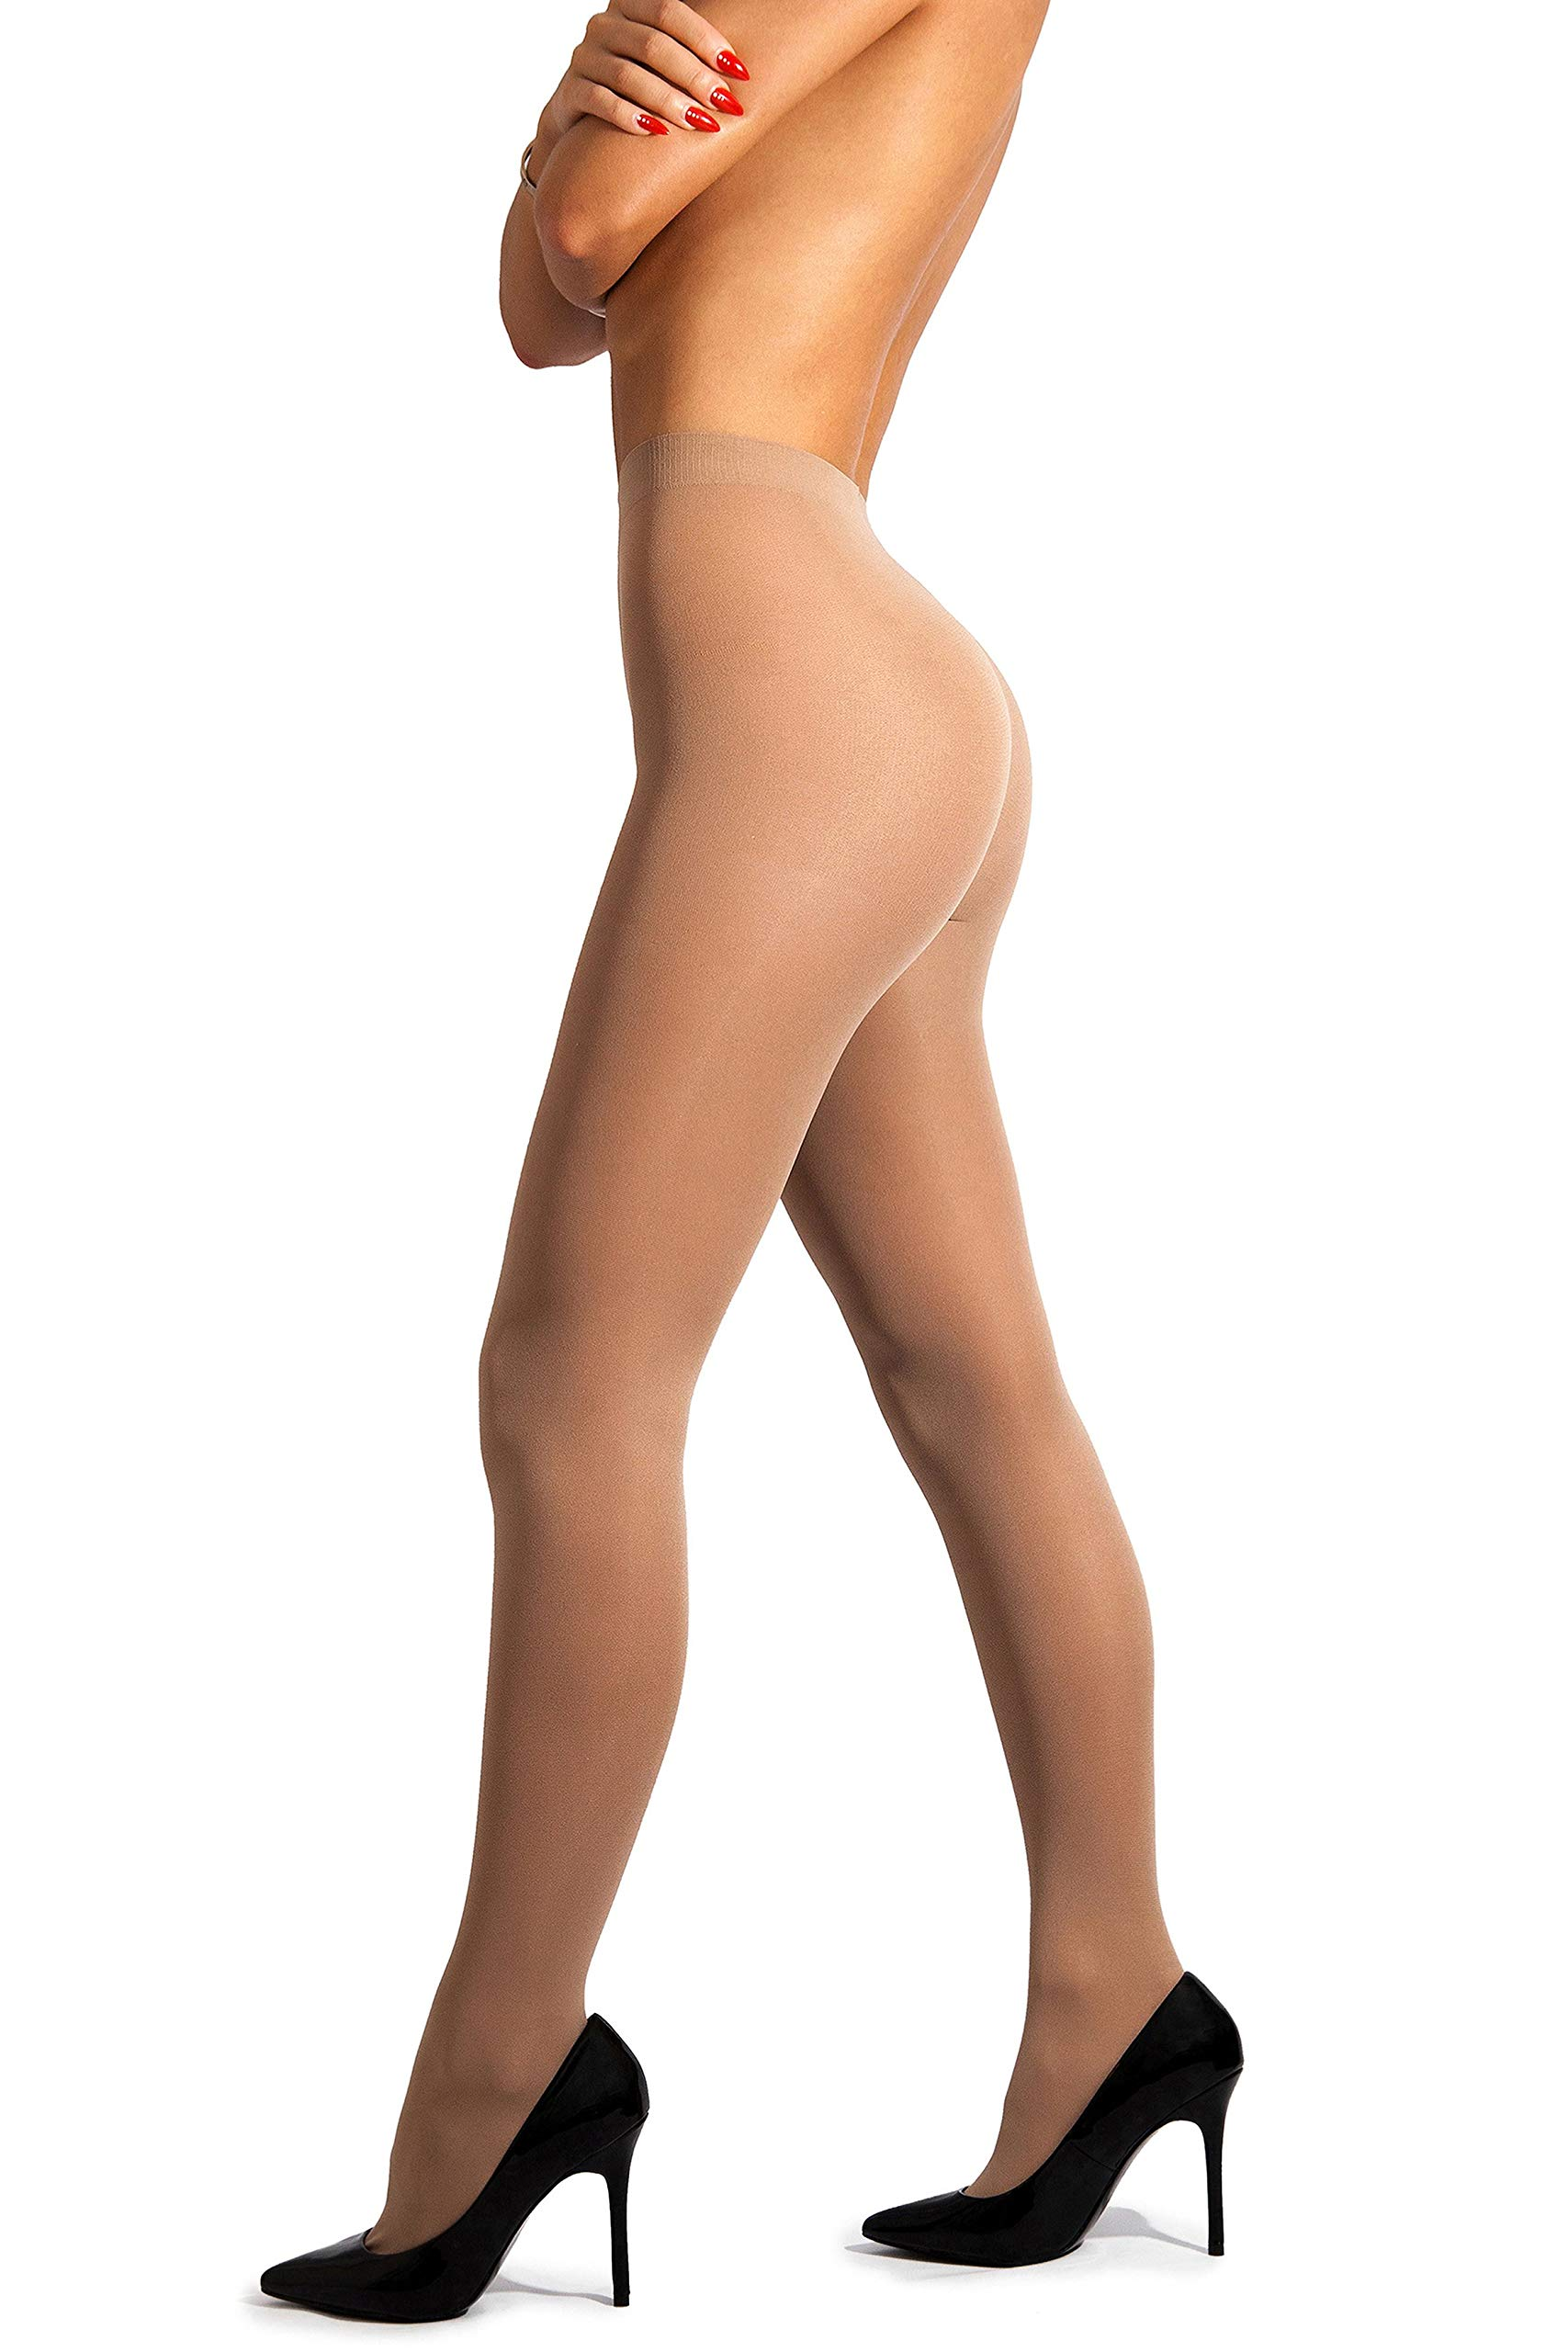 sofsy Opaque Microfibre Tights for Women - Invisibly Reinforced Opaque Brief Pantyhose 40Den [Made In Italy] Natural Beige Nude 5 - X-Large